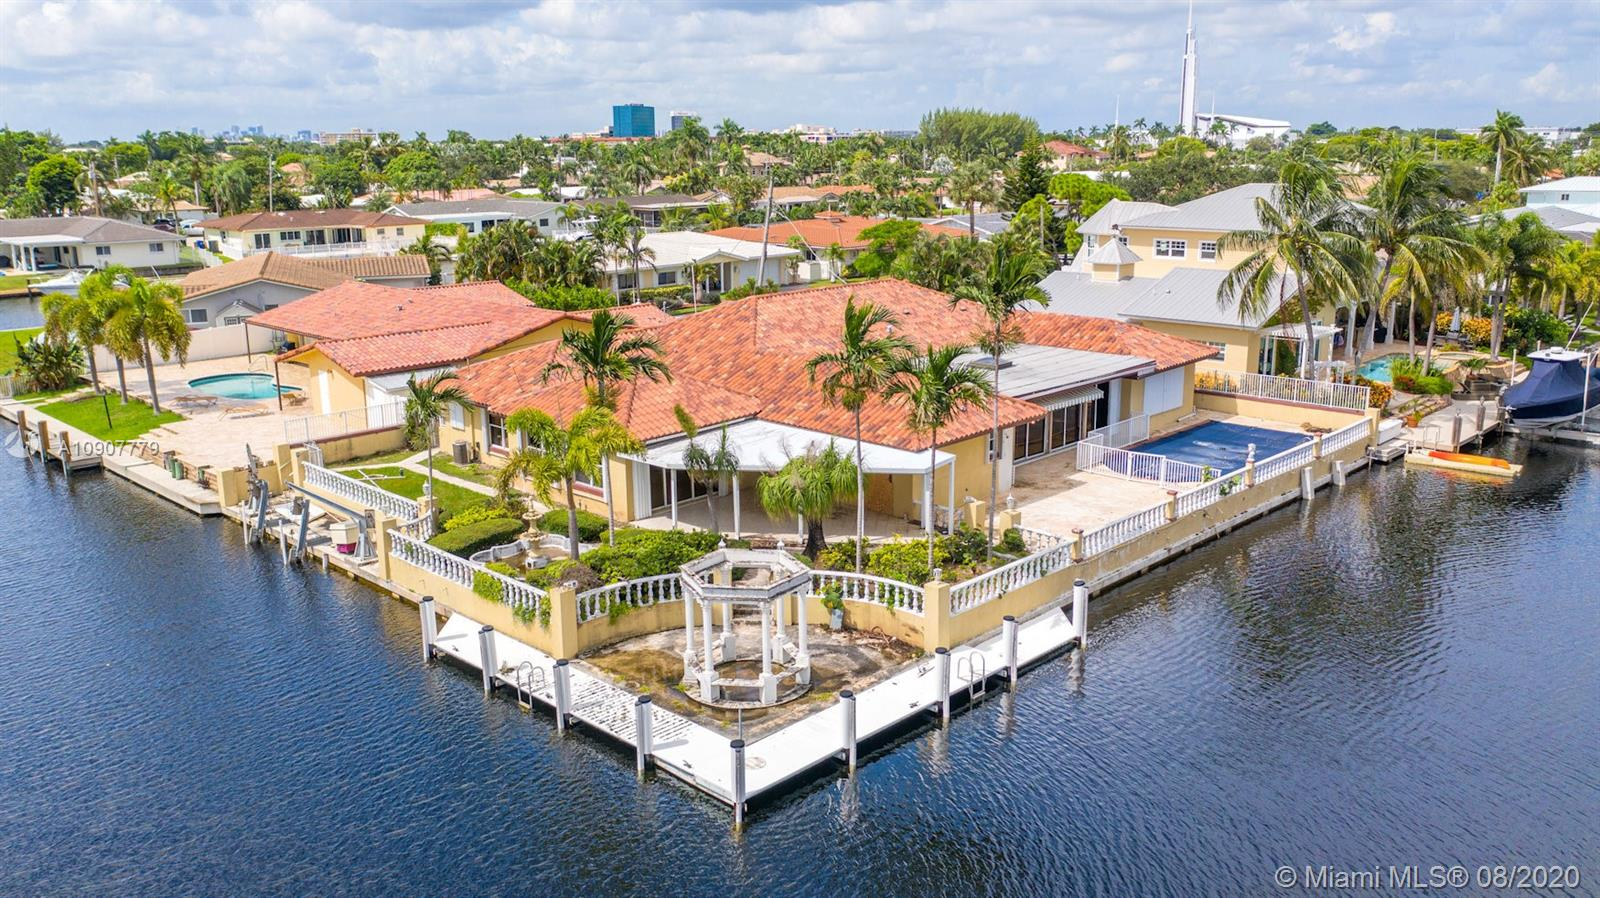 EXTREMELY DESIRABLE and RARELY AVAILABLE 205'ft wf point lot in an amazing location in much desired Ft Laud! Boater's dream location, location, location w/ocean access at an almost unheard of asking price! 5 br 4.5 ba, 2 car gar, media rm, skylight in lg sun rm, marble bath, fireplace and lovely  Marble flooring in liv rm, formal din rm, foyer, marble accents throughout. Very large master walk-in closet. 4,147 sf under air. PROPERTY SOLD AS-IS. NO REPAIRS NO REPAIR CREDITS. Seawall and pool needs repair buyer is responsible to verify property, pool, seawall, dock system condition, permits and/or code compliance and/or violations and liens and must take subject to municipal requirements and liens or fines due (if any exist) Lien amounts not known at this time.